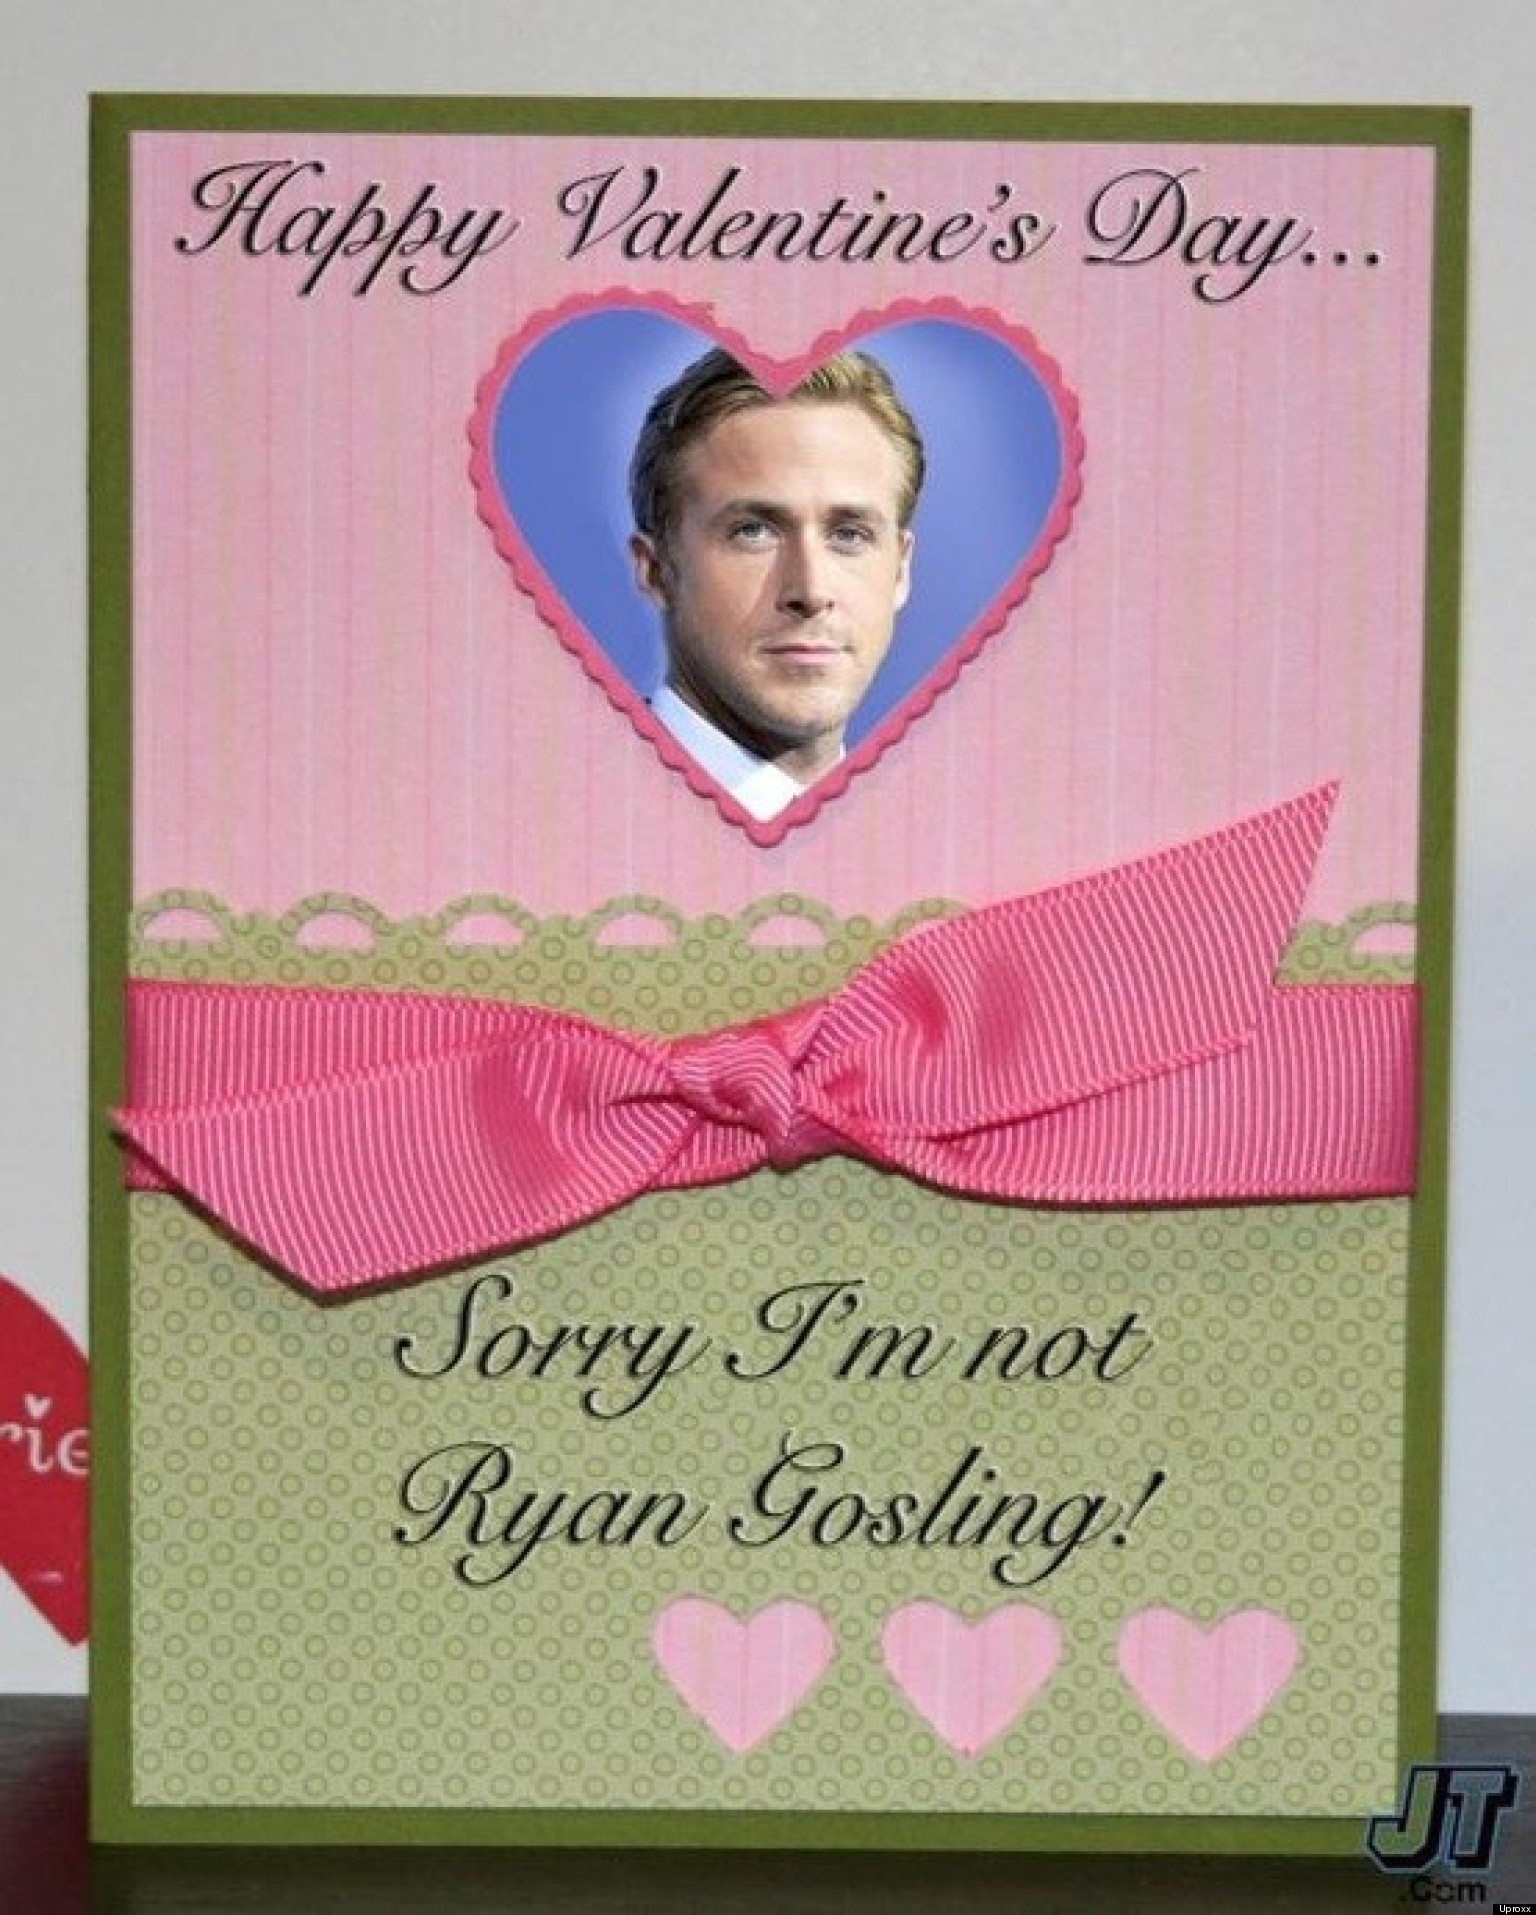 25 Funny Valentines Day Cards PHOTOS – Valentine Funny Card